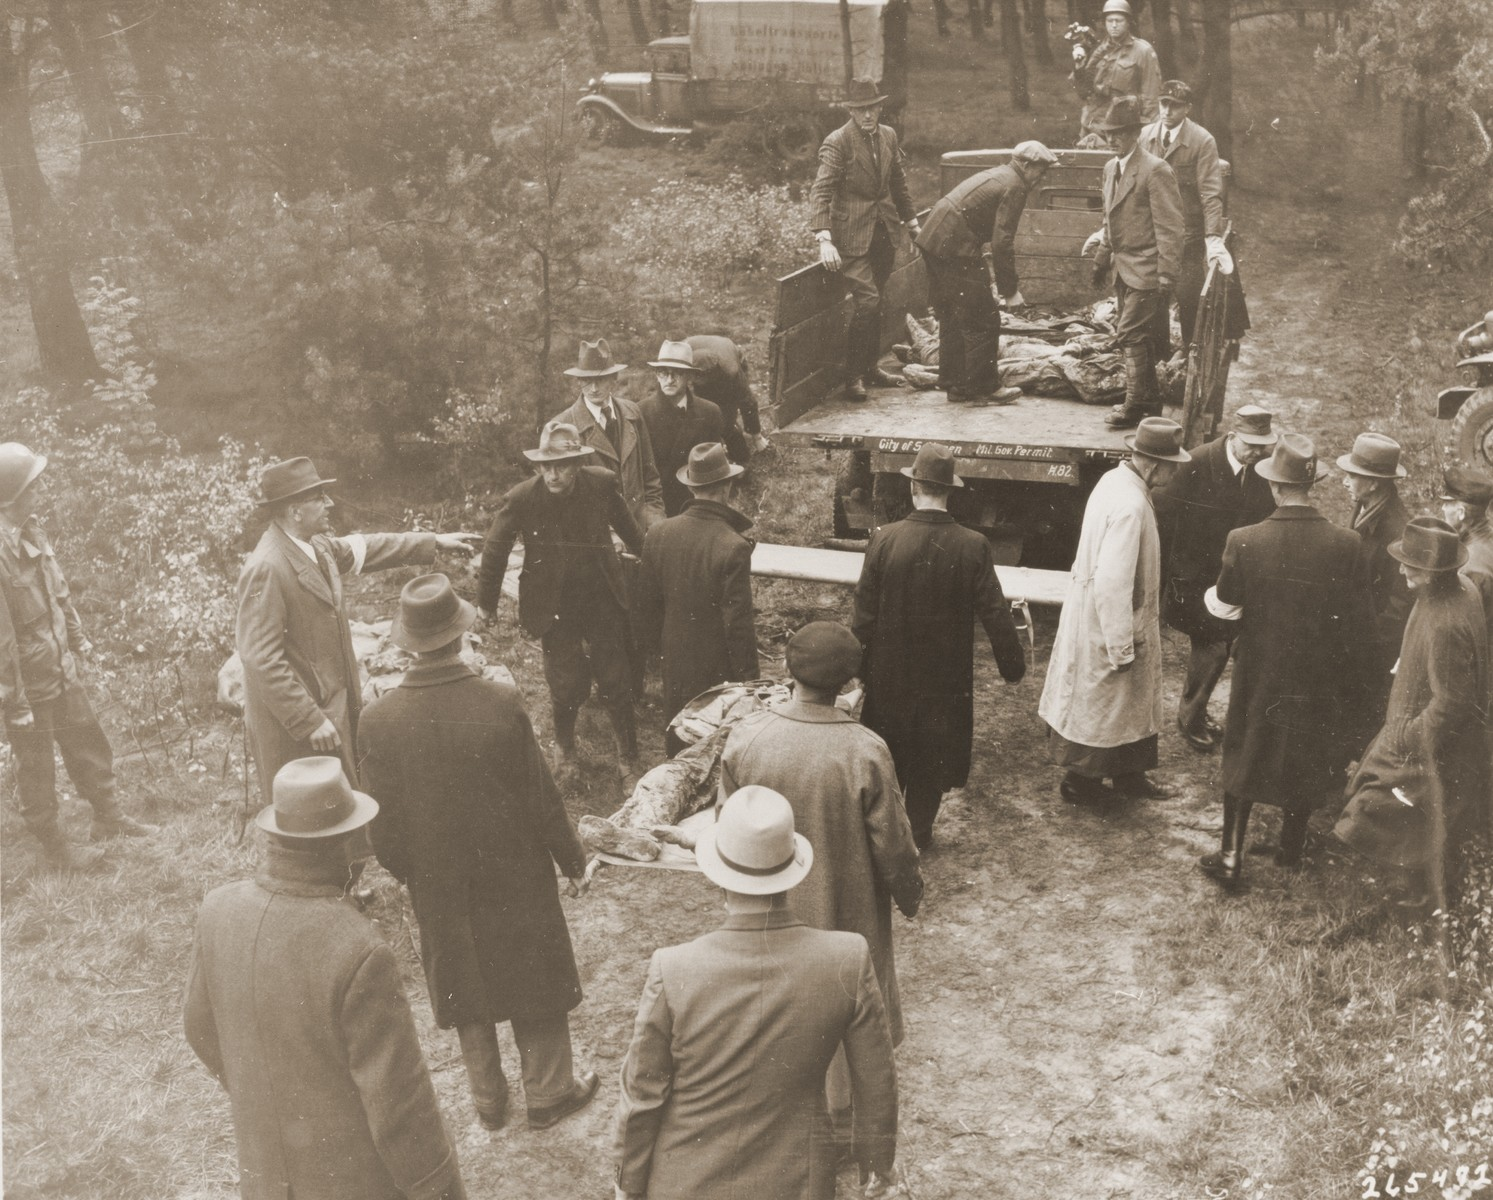 Under the direction of American soldiers, German civilians transport the bodies of 71 political prisoners exhumed from a mass grave on Wenzelnberg near Solingen-Ohligs to the town for reburial.    The victims, most of whom were taken from Luettringhausen prison, were shot and buried by the Gestapo following orders to eliminate all Reich enemies just before the end of the war.